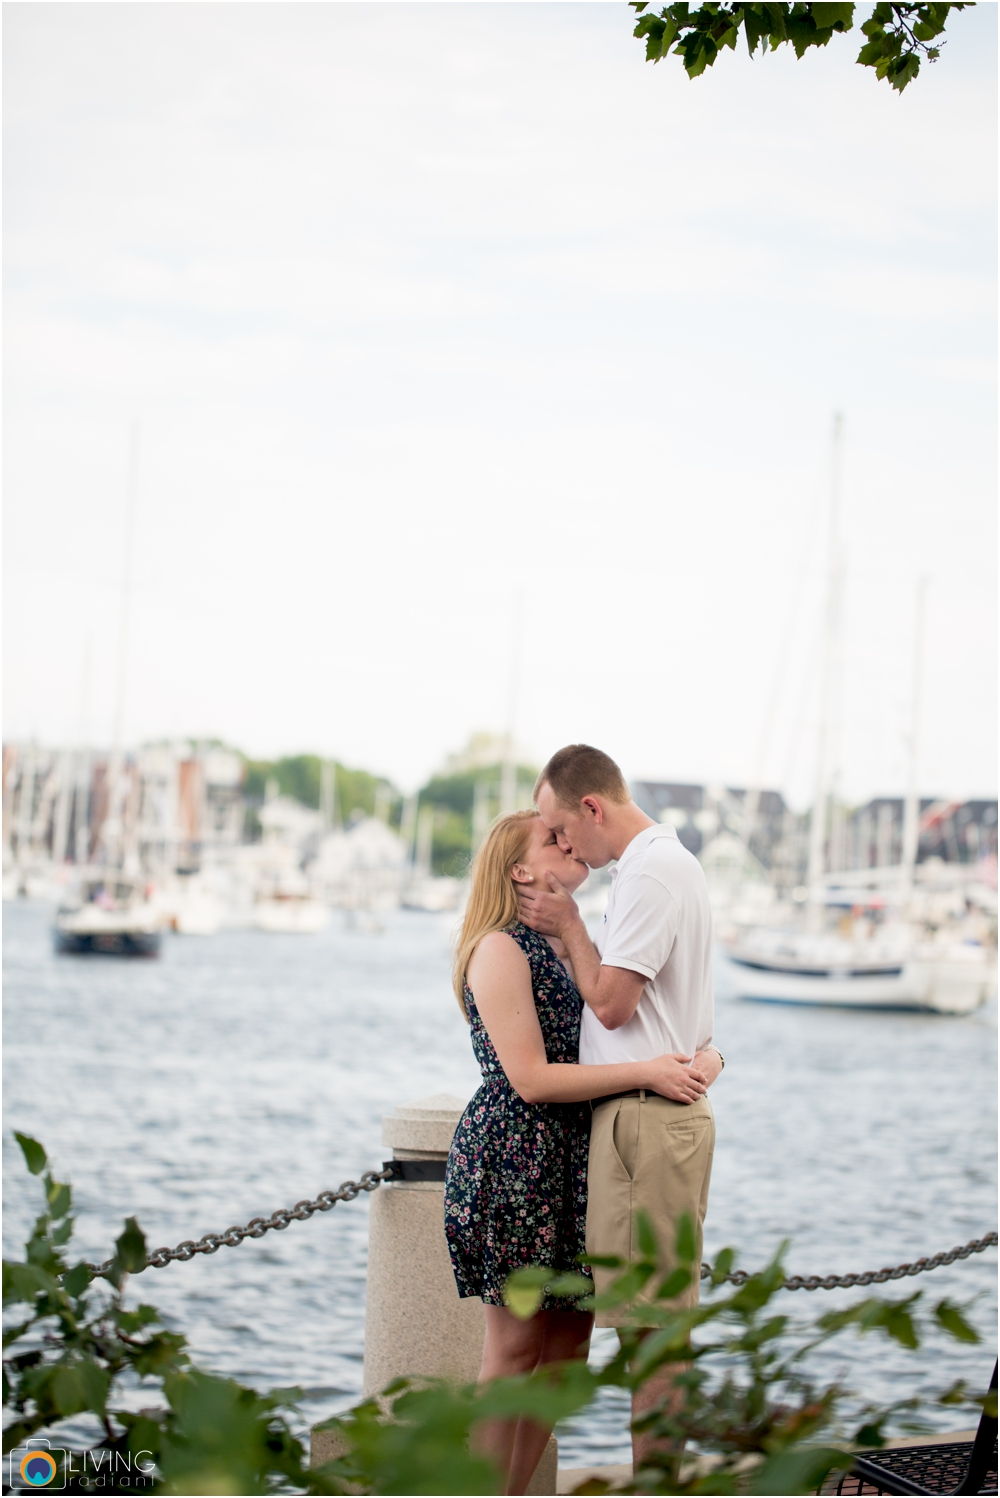 casey-clark-engaged-annapolis-downtown-naval-academy-engagement-session-living-radiant-photography-maggie-patrick-nolan-outdoor-water-boats_0017.jpg